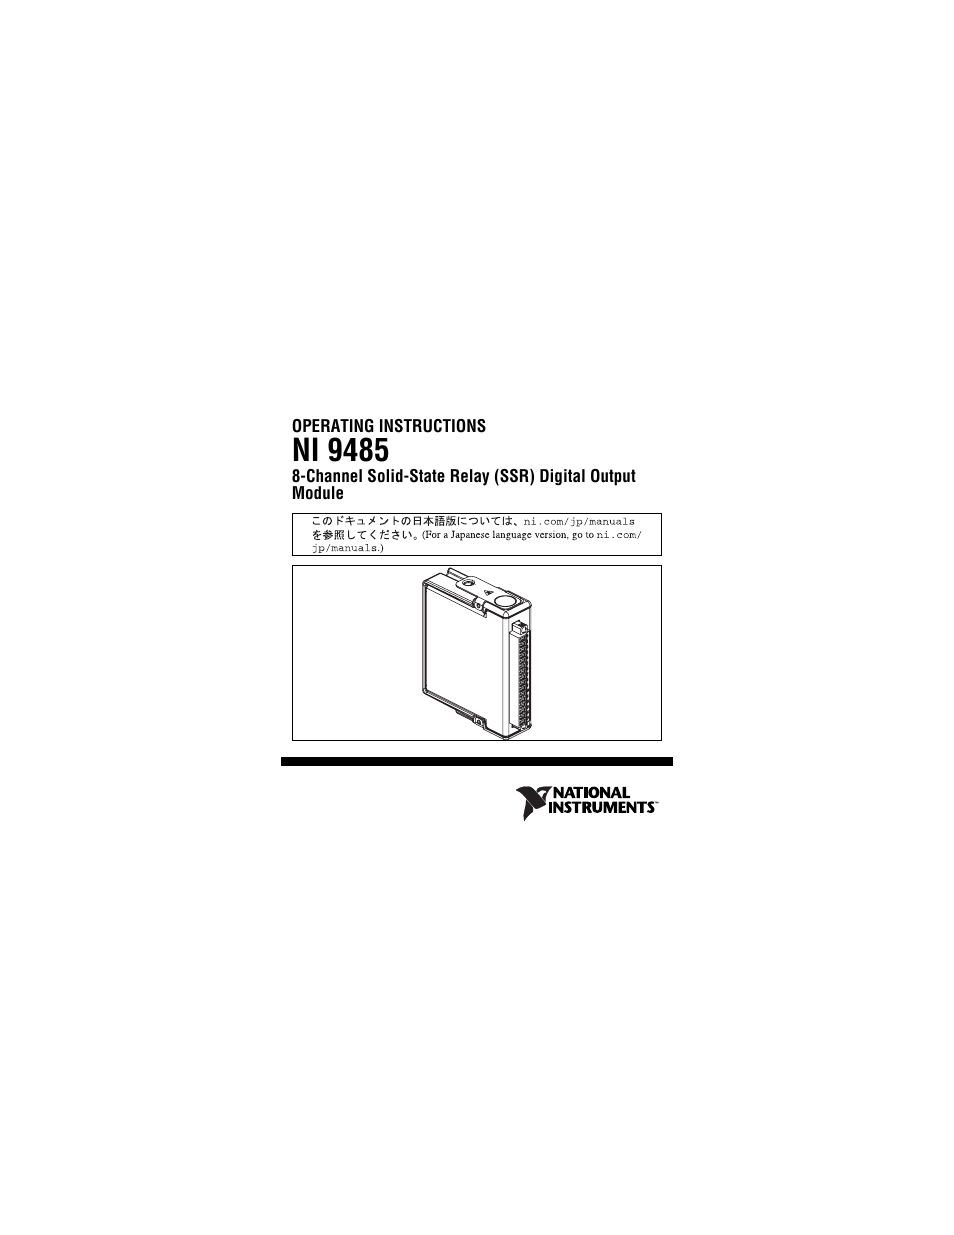 national instruments 8 channel solid state relay ssr digital output ni 9485 user manual 23 pages